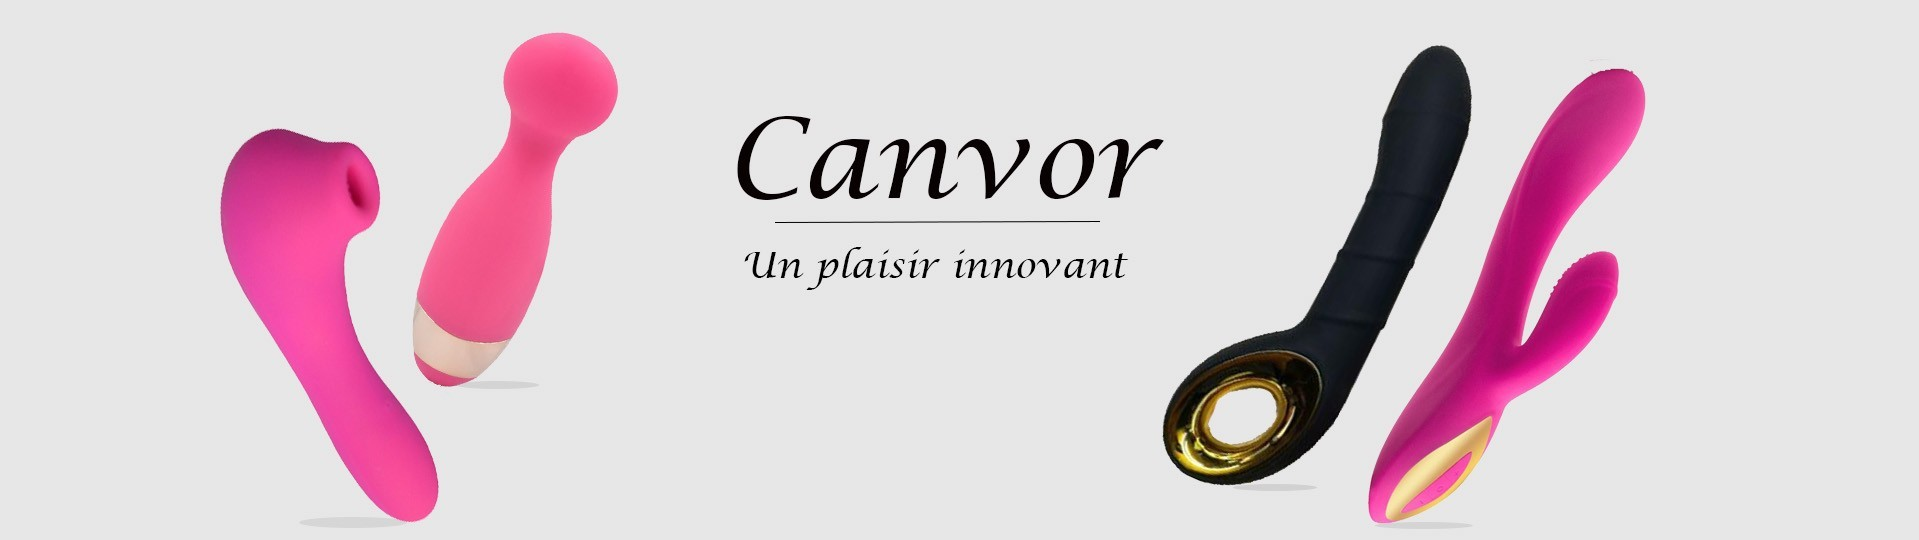 Canvor